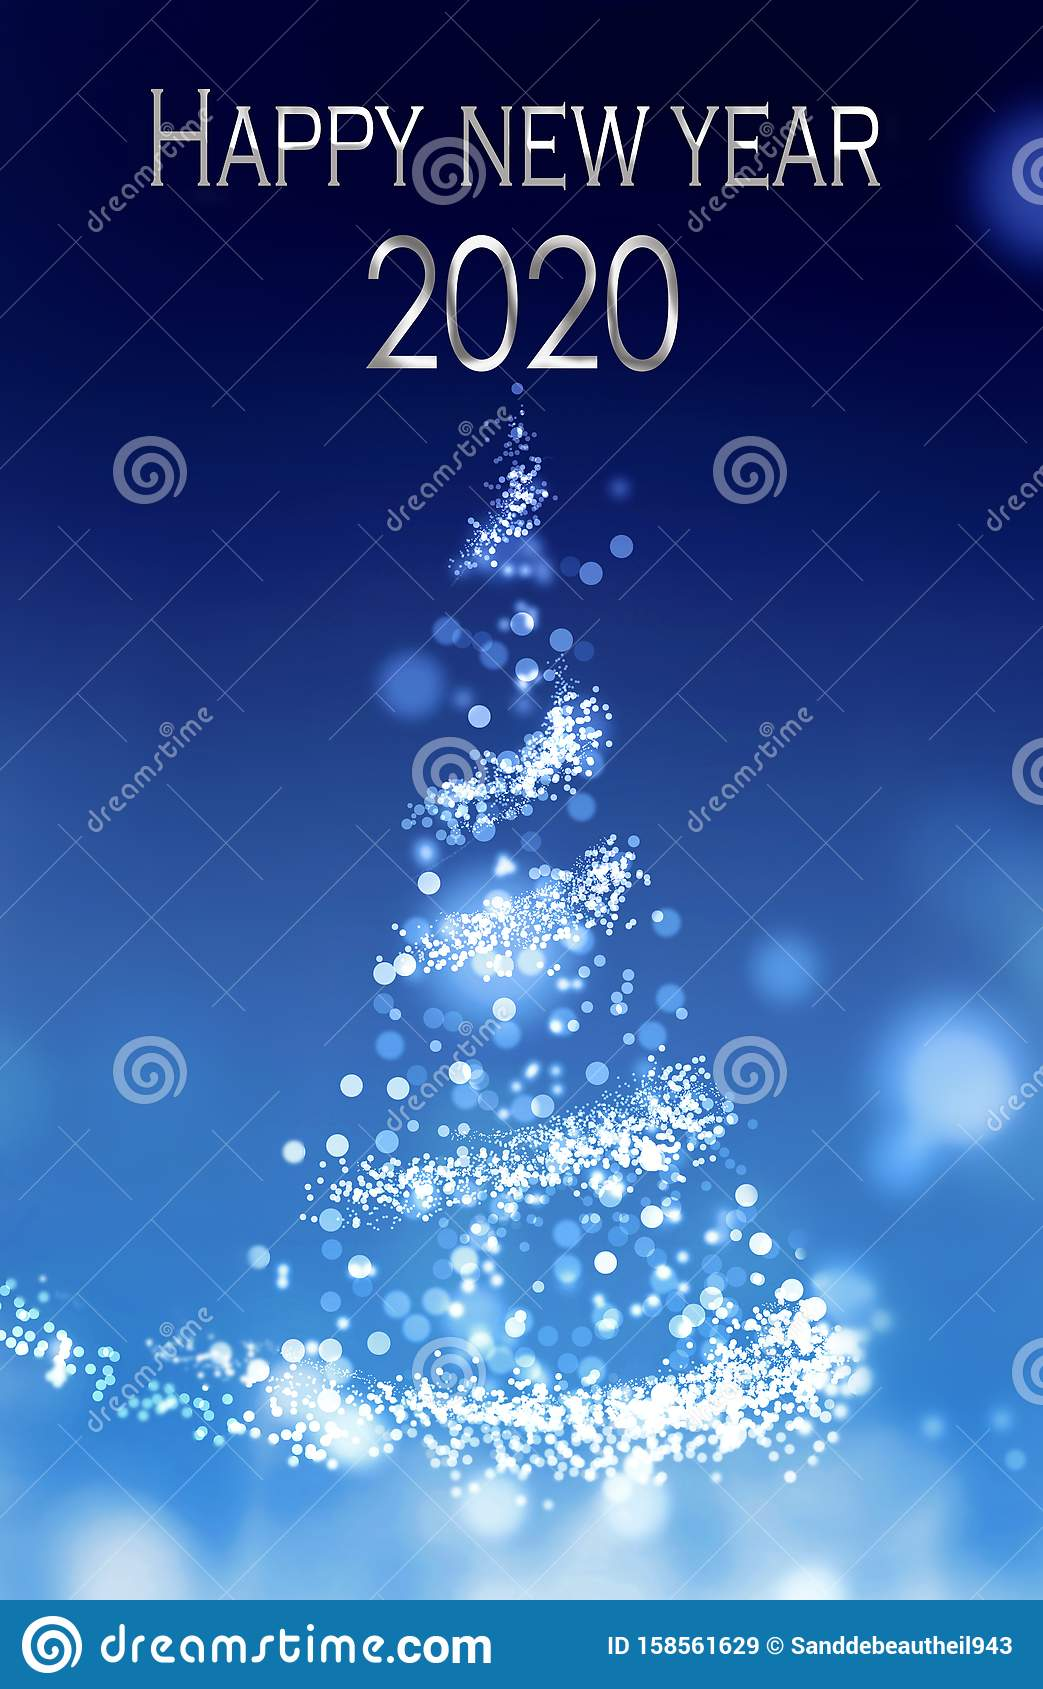 2020 happy new year on abstract magical christmas tree stock illustration illustration of illuminated light 158561629 https www dreamstime com happy new year abstract magical christmas tree happy new year abstract magical illuminated christmas tree image158561629